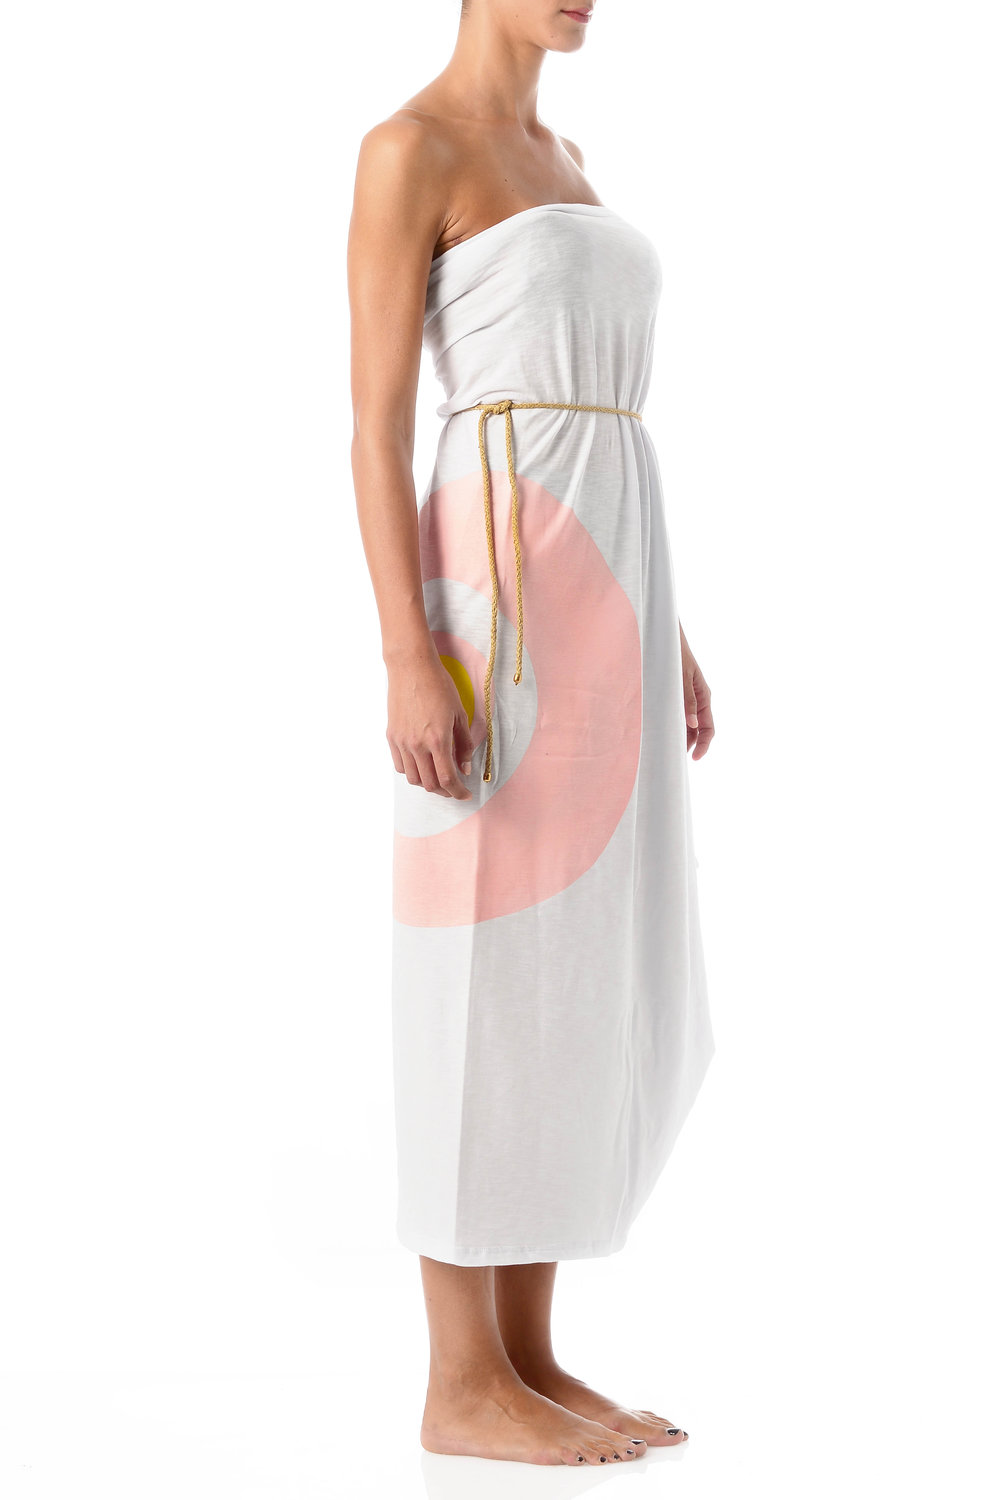 evile-eye-rose-yellow-strapless-dress-wraped-on-side-side.jpg